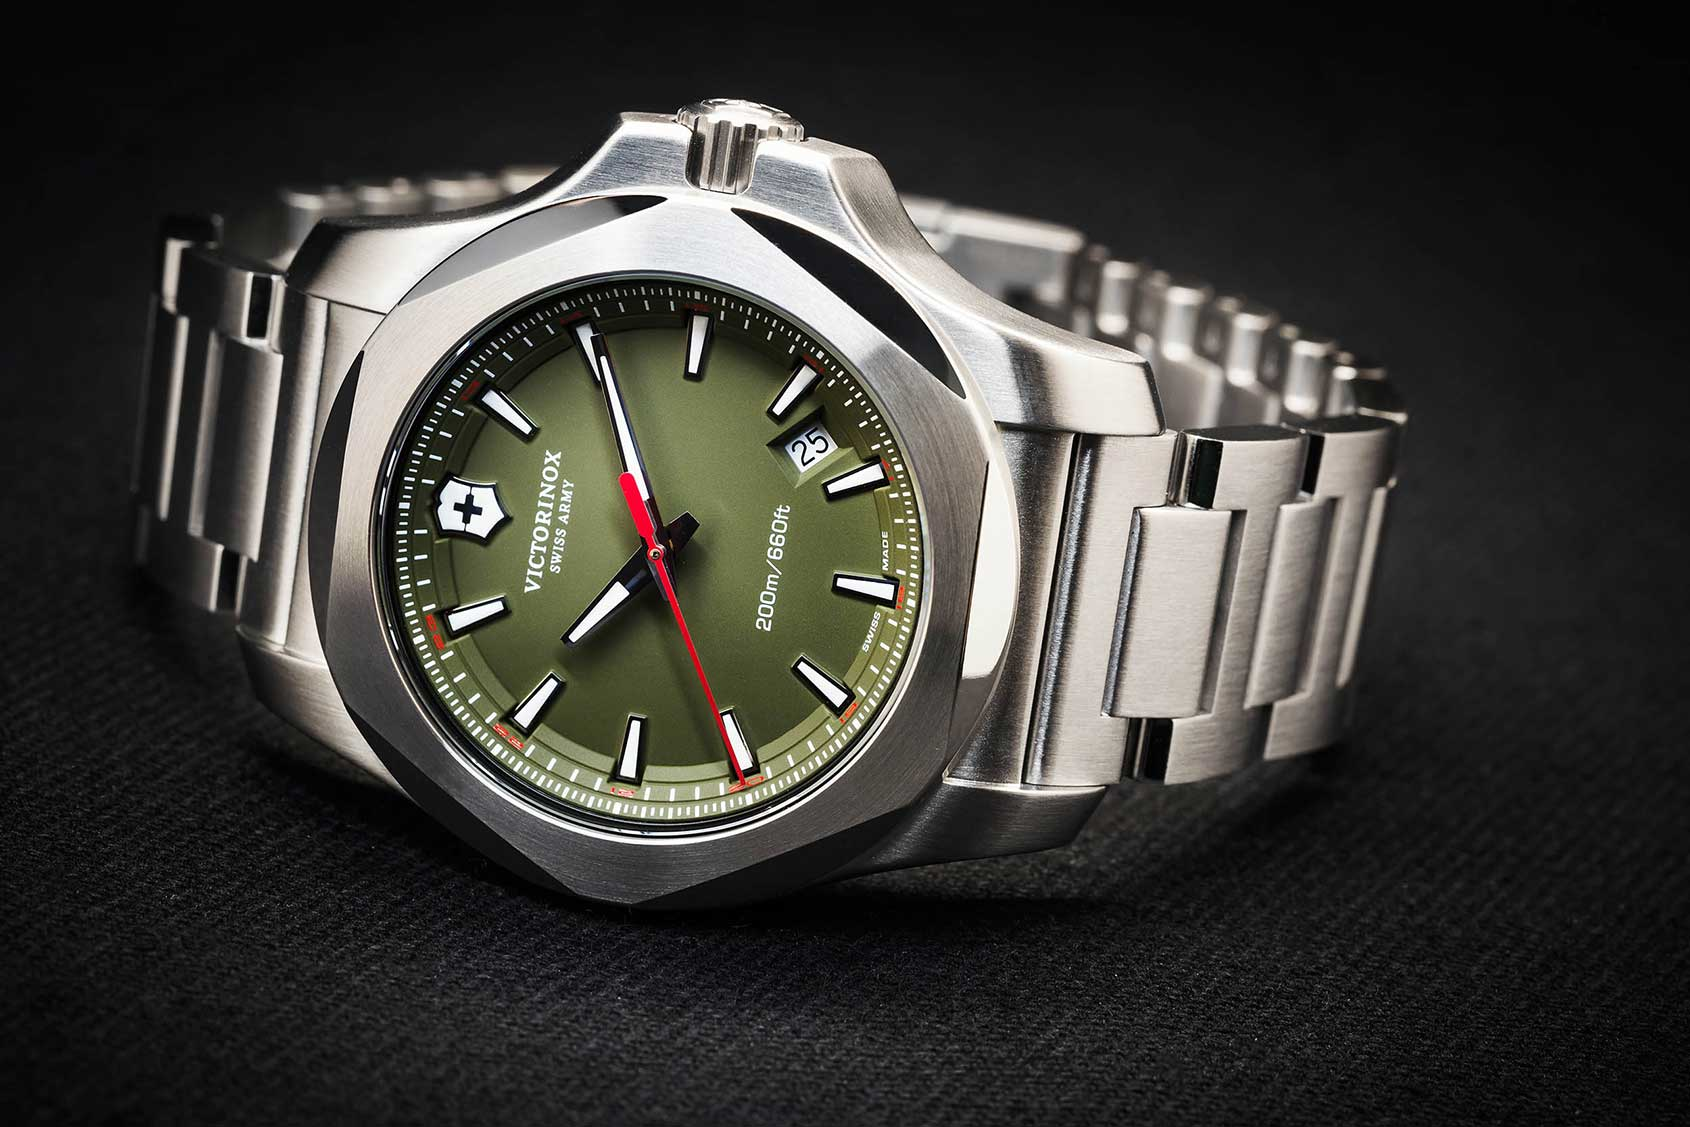 Introducing The Victorinox Swiss Army I N O X On Steel